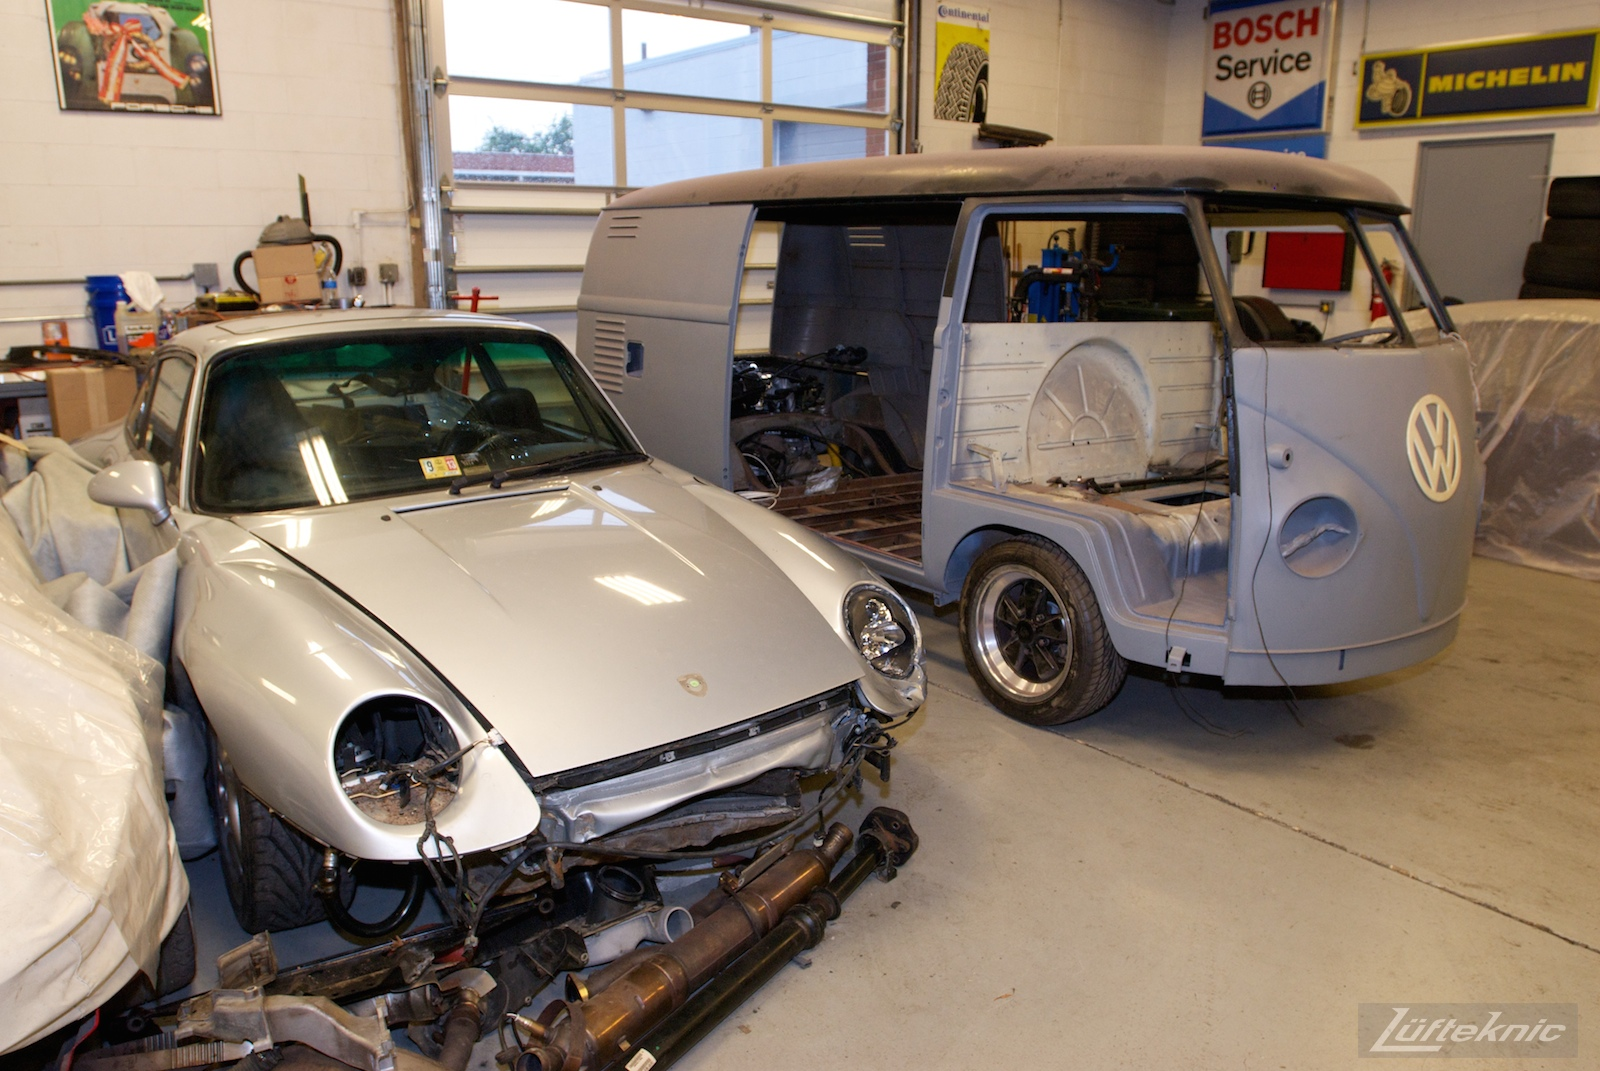 1956 Volkswagen double panel Transporter Porsche Bus with engine installed next to donor car.